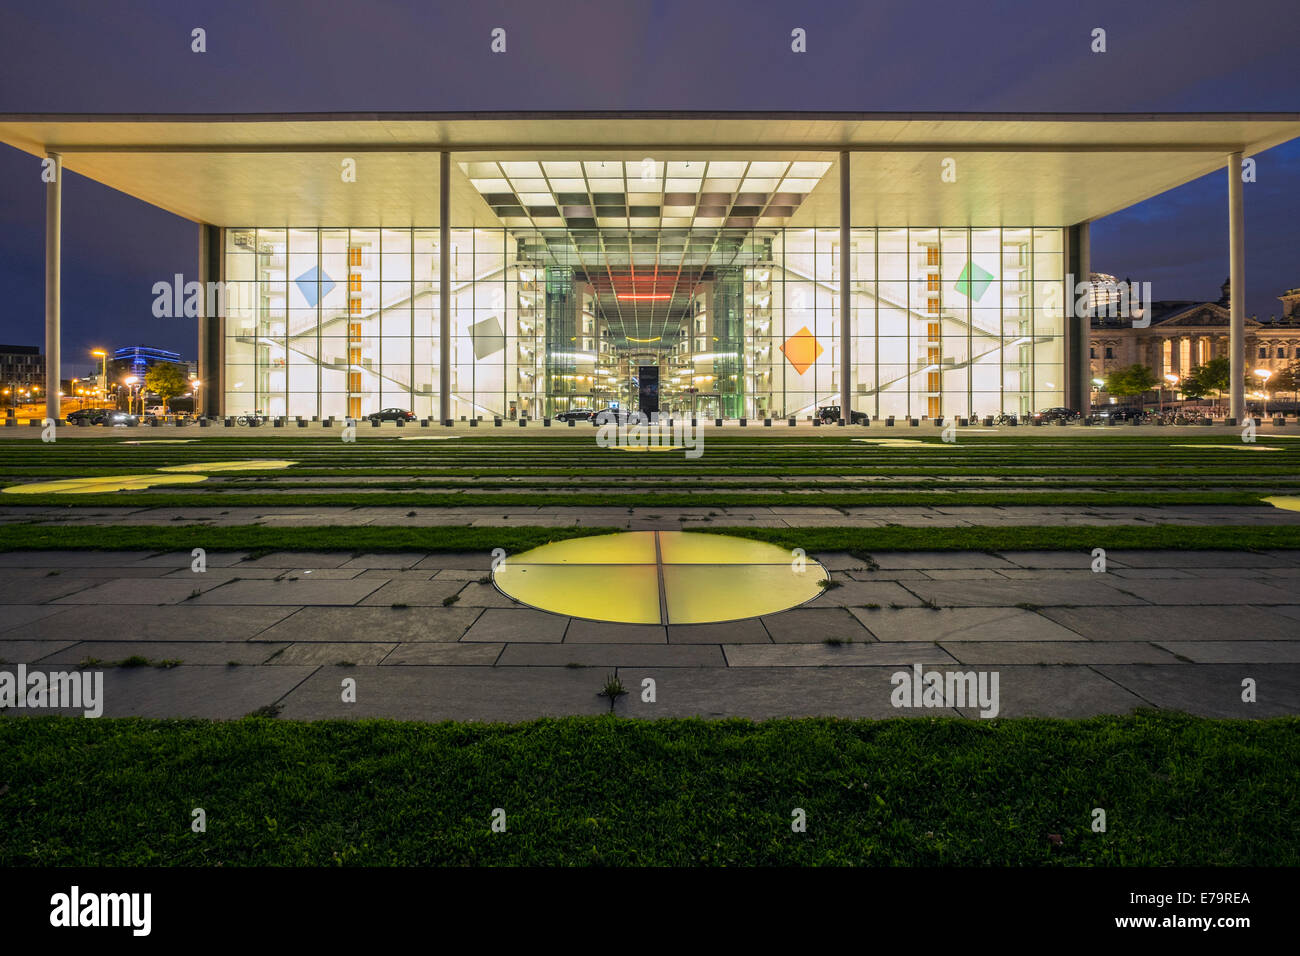 Paul Lobe Haus government office building part of Bundestag at night in Berlin Germany - Stock Image